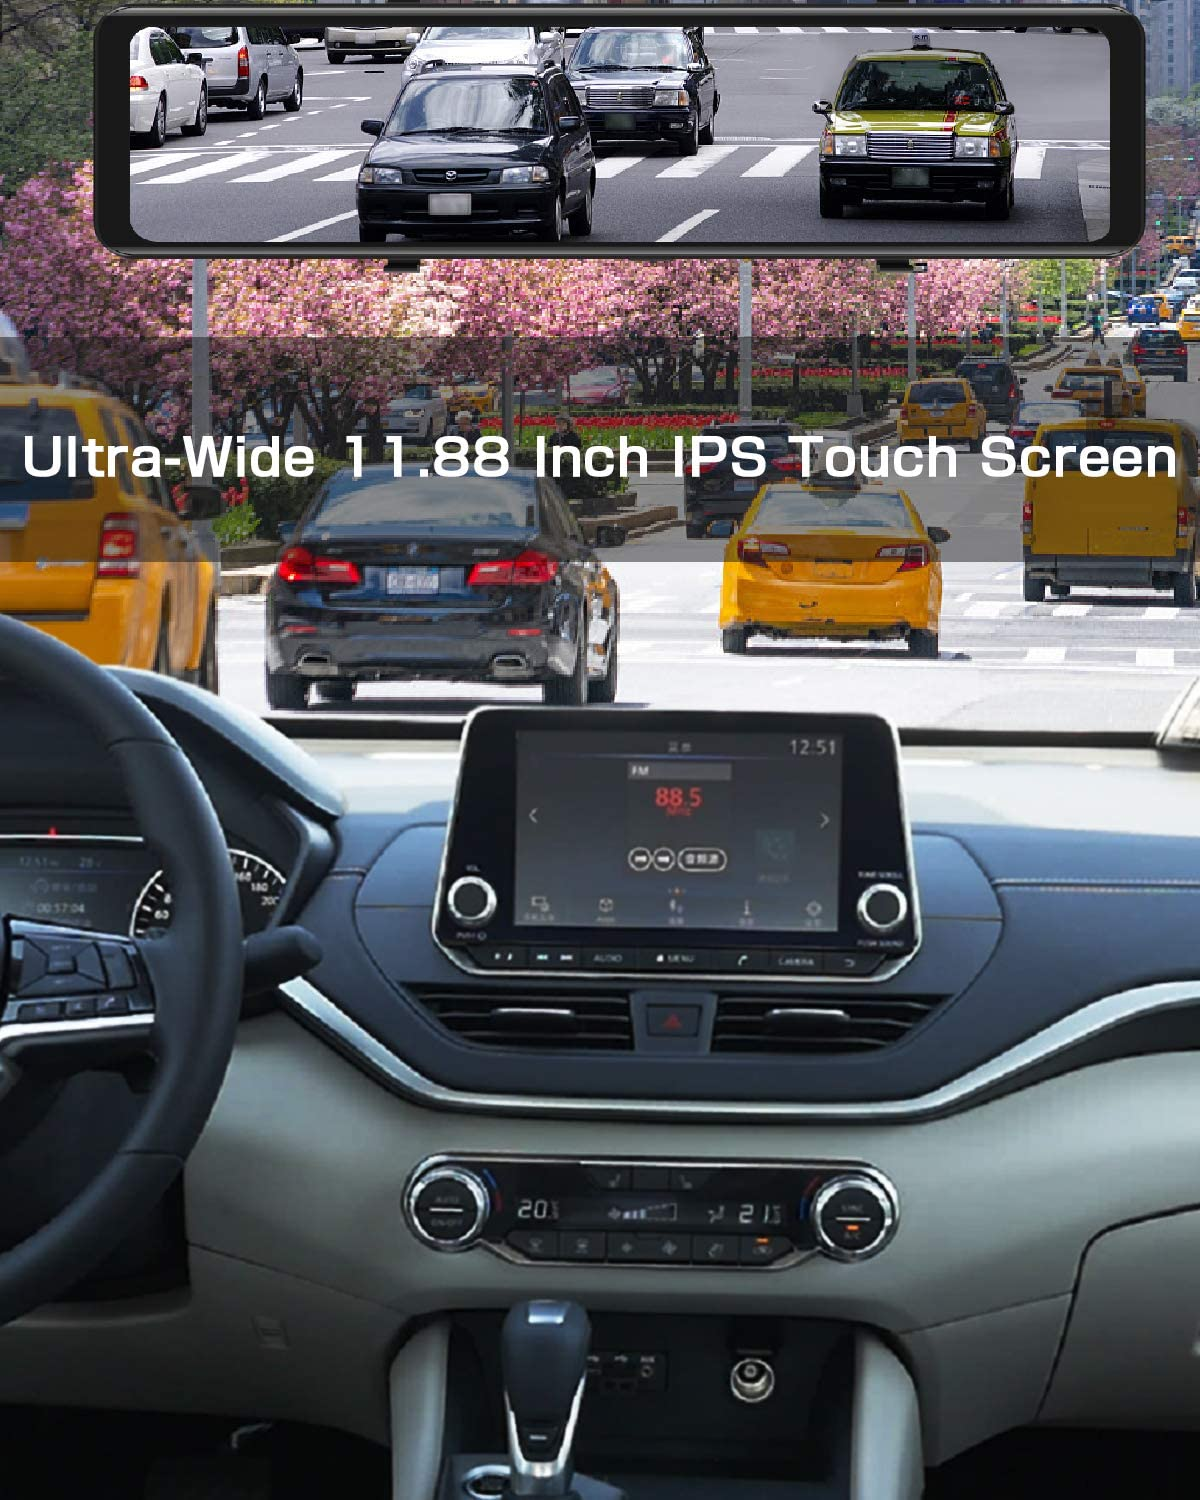 Parking Monitor/&Assistance Night Vision AKEEYO X2 Mirror Dash Cam for Cars 11.88 Inch IPS Touch Screen Loop Recording FHD 1080P Front and Rear Backup Camera with HDR G-Sensor